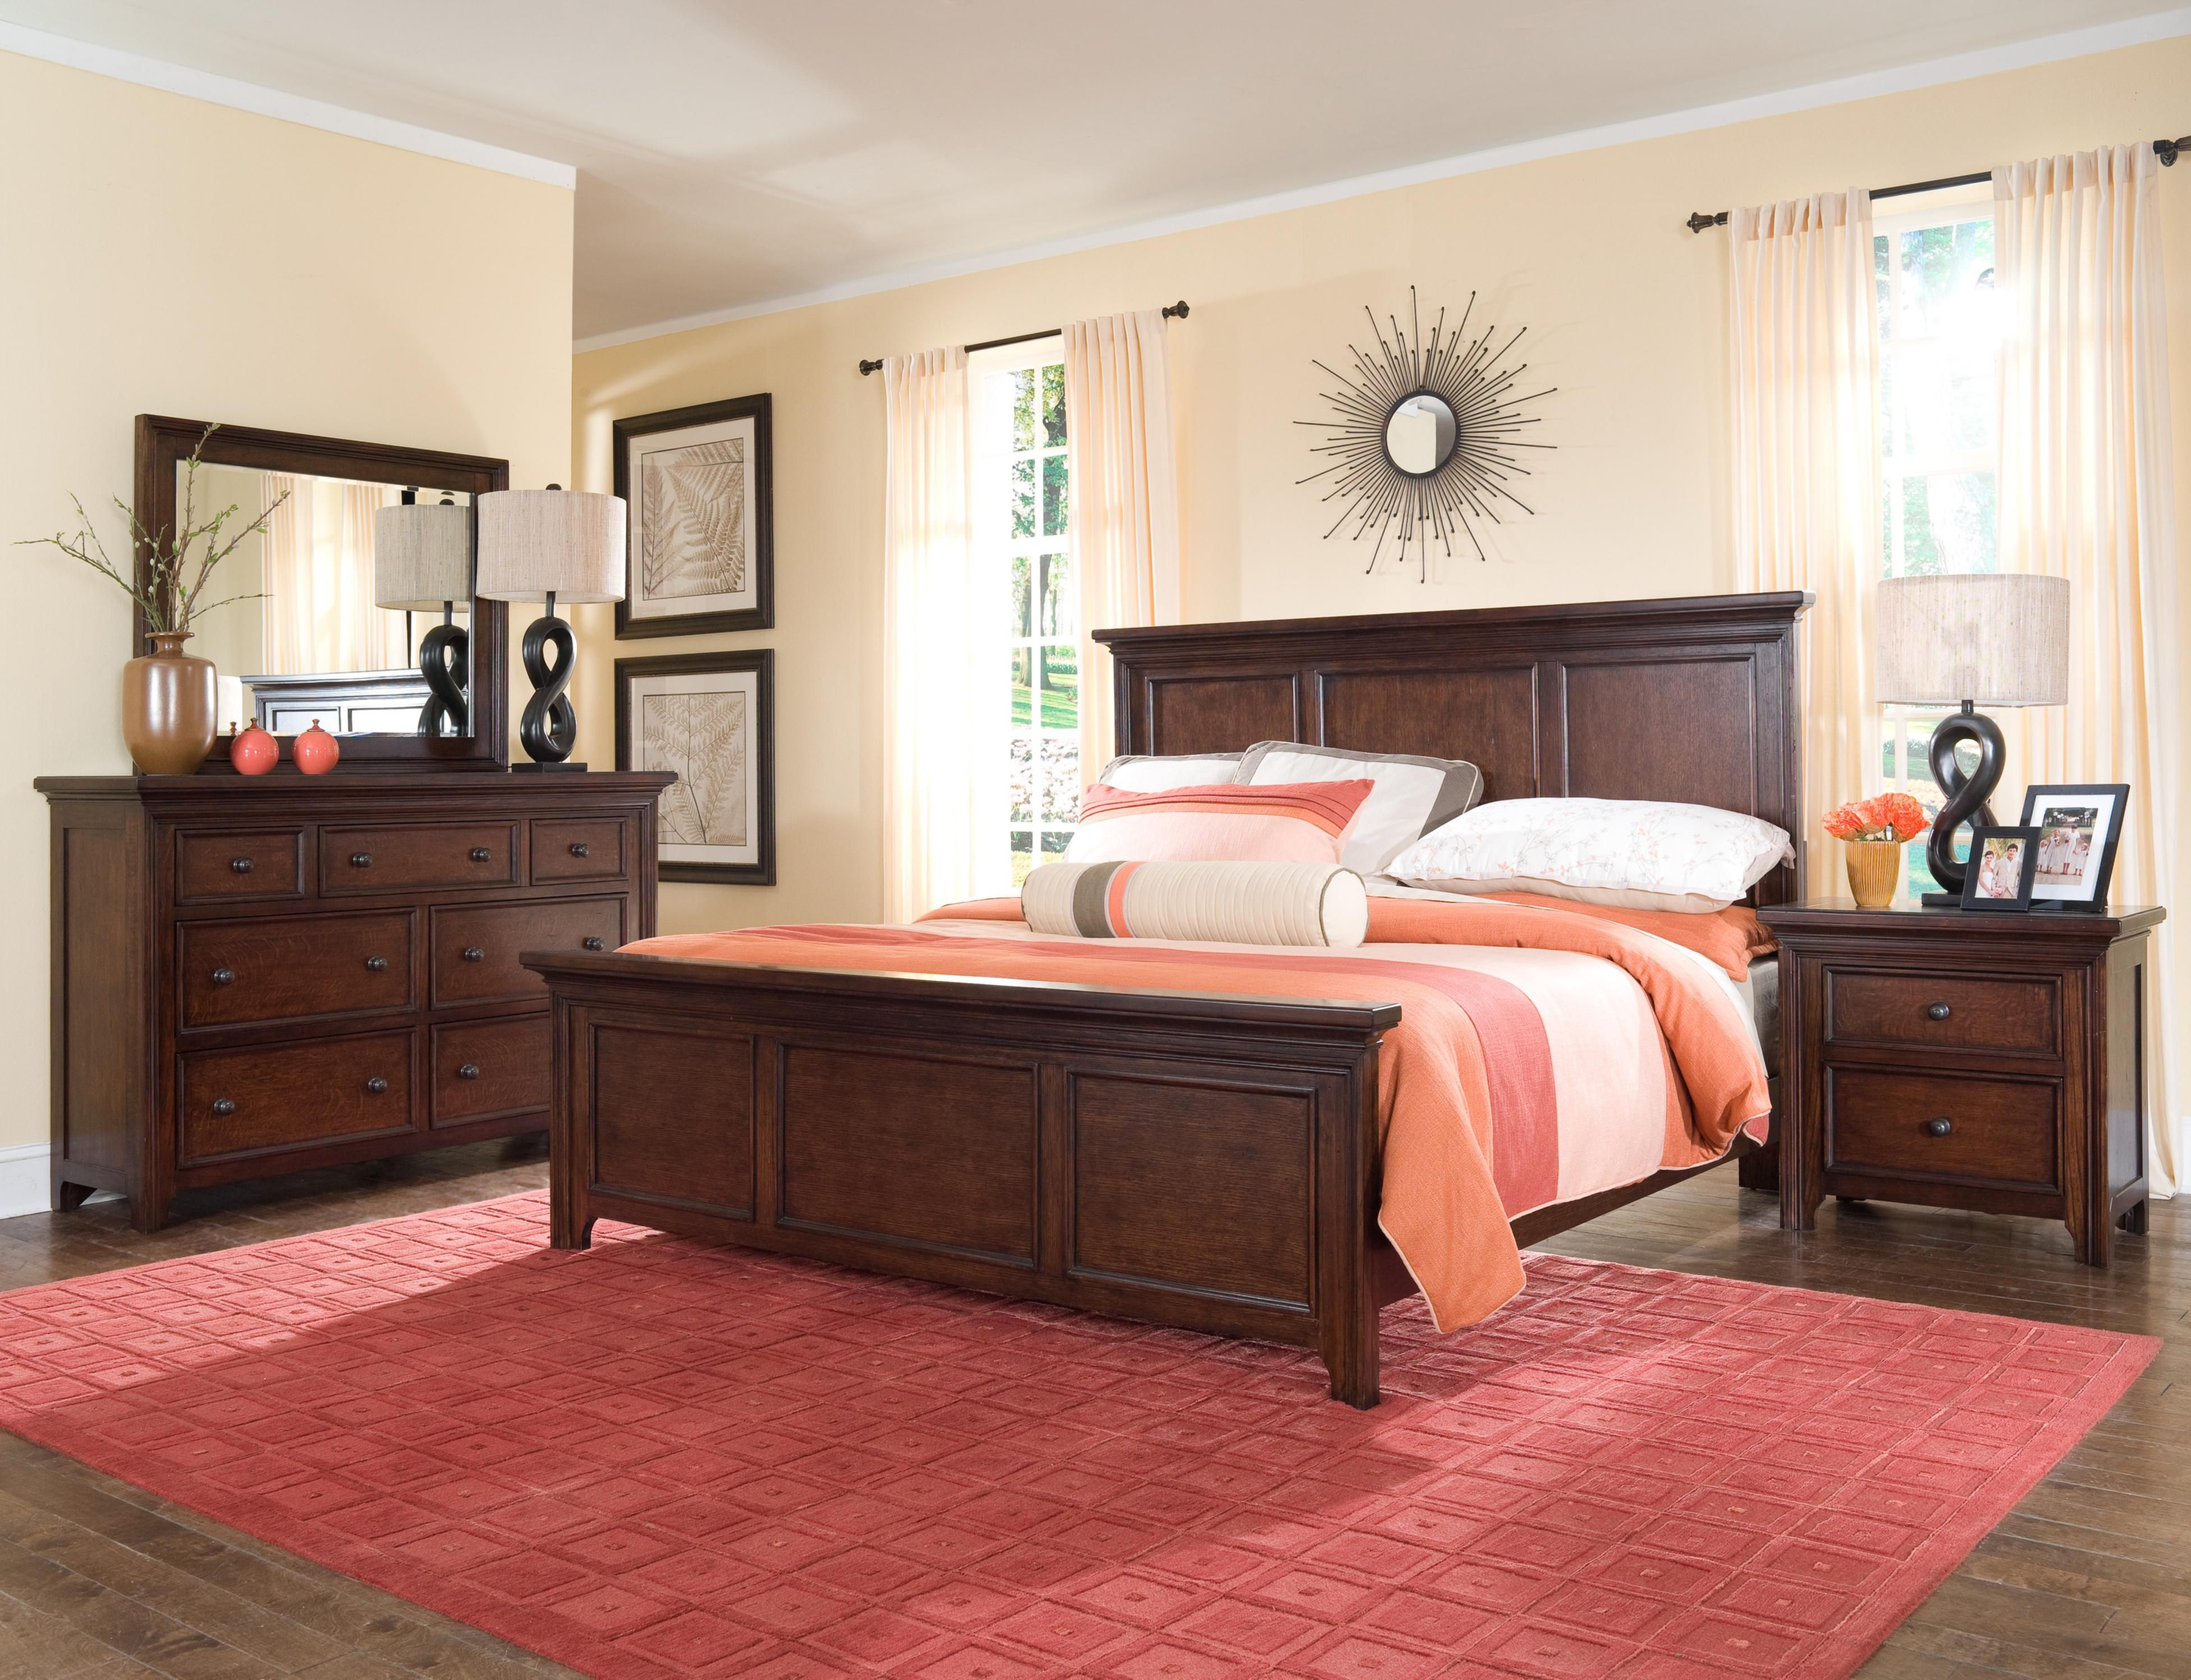 Abbott bay by broyhill furniture home inspiration - Unique bedroom furniture for sale ...